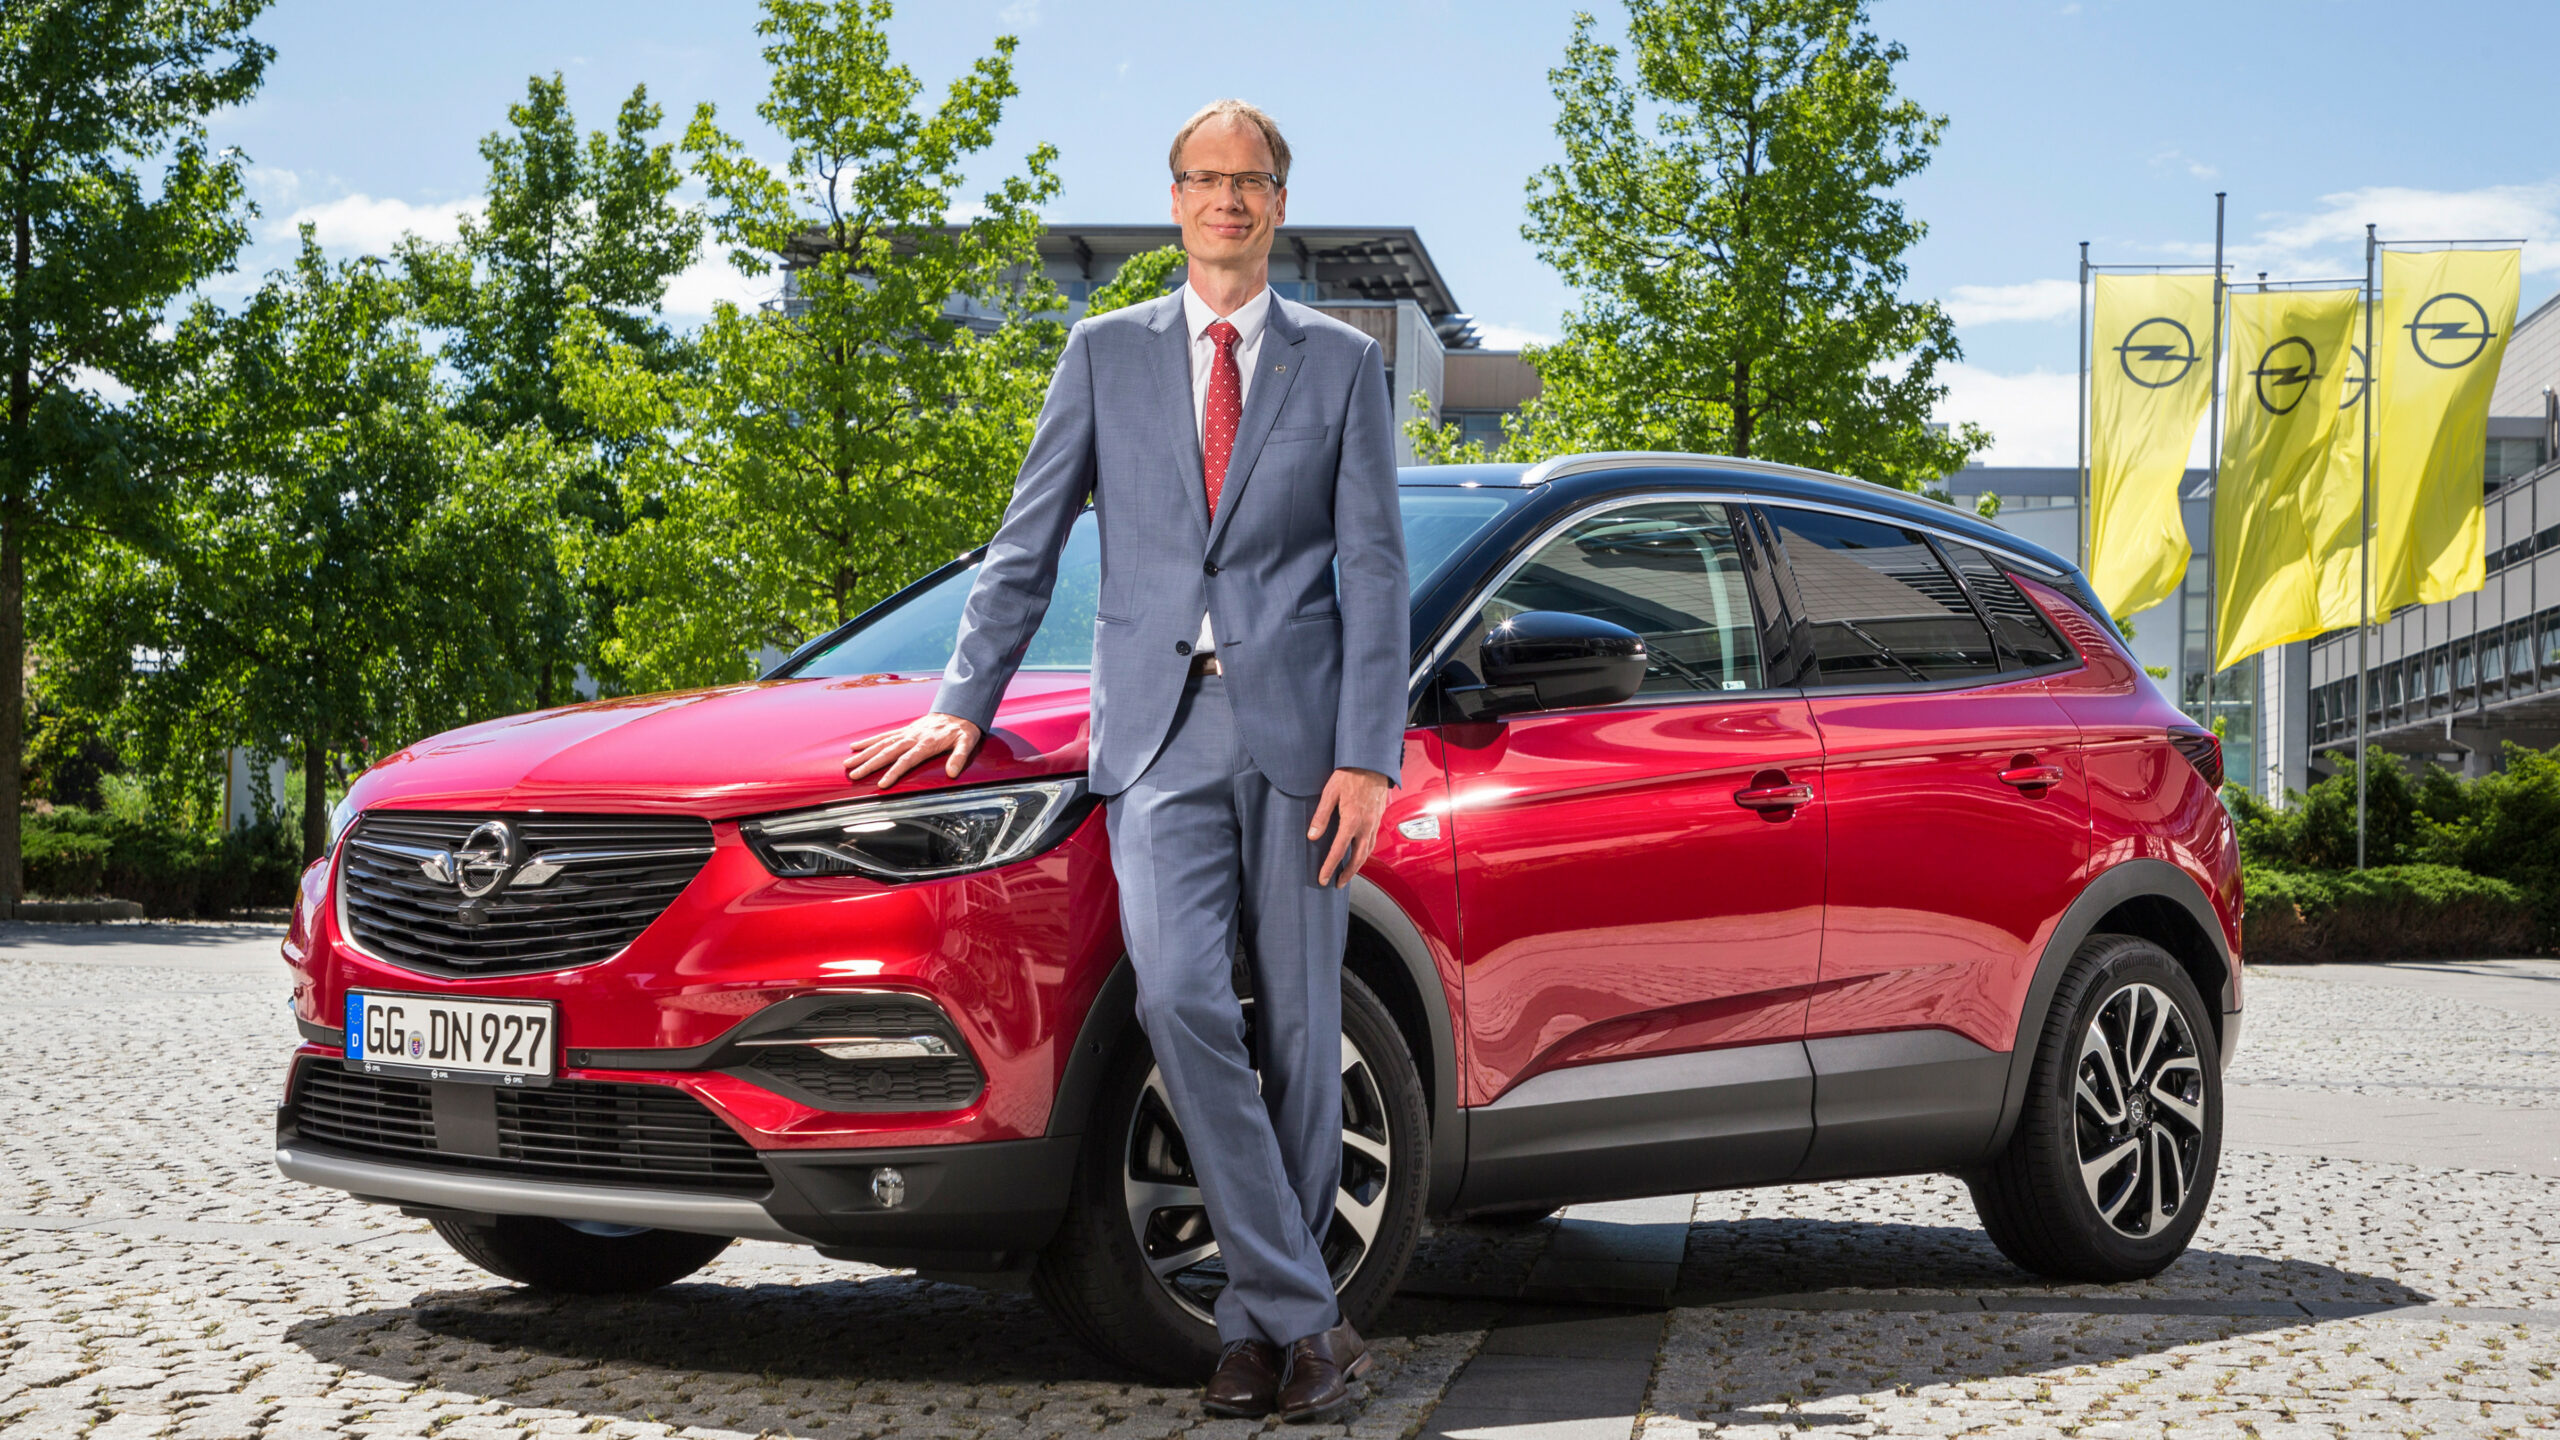 Alle Acht-ung! - Opel POST - opel 2020 news